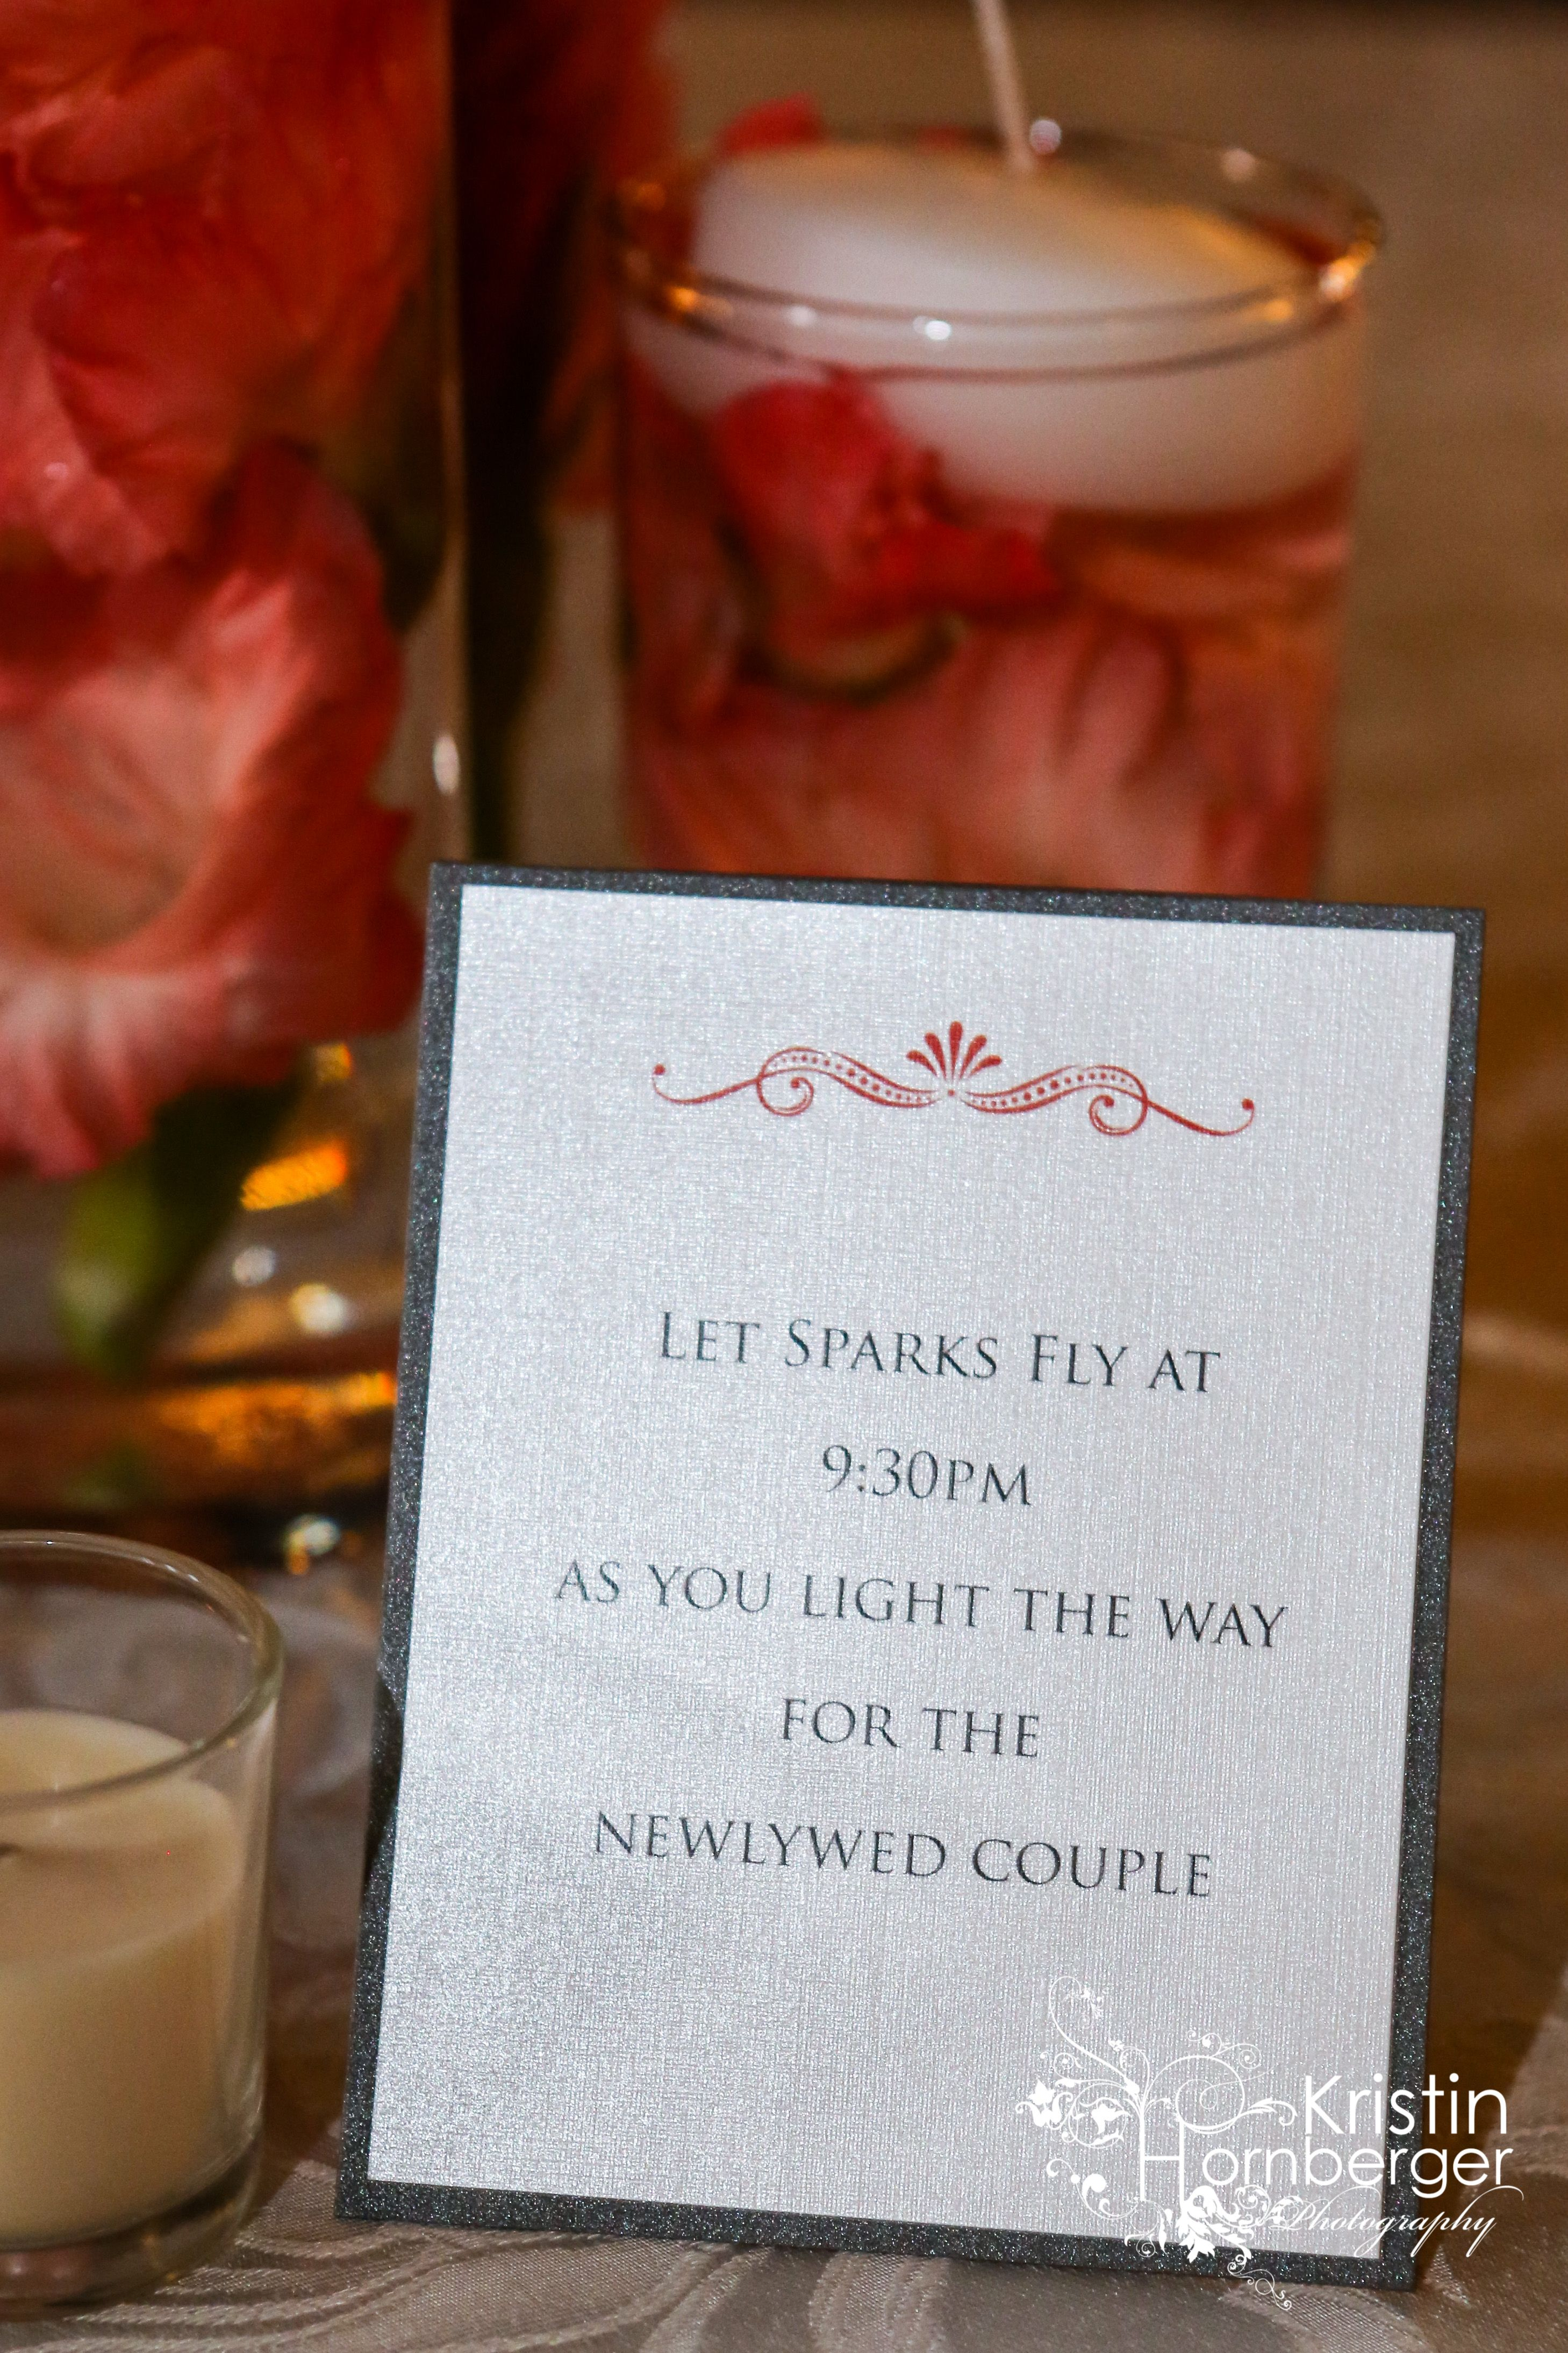 Lauren evan ud married super cute idea with the wedding note to